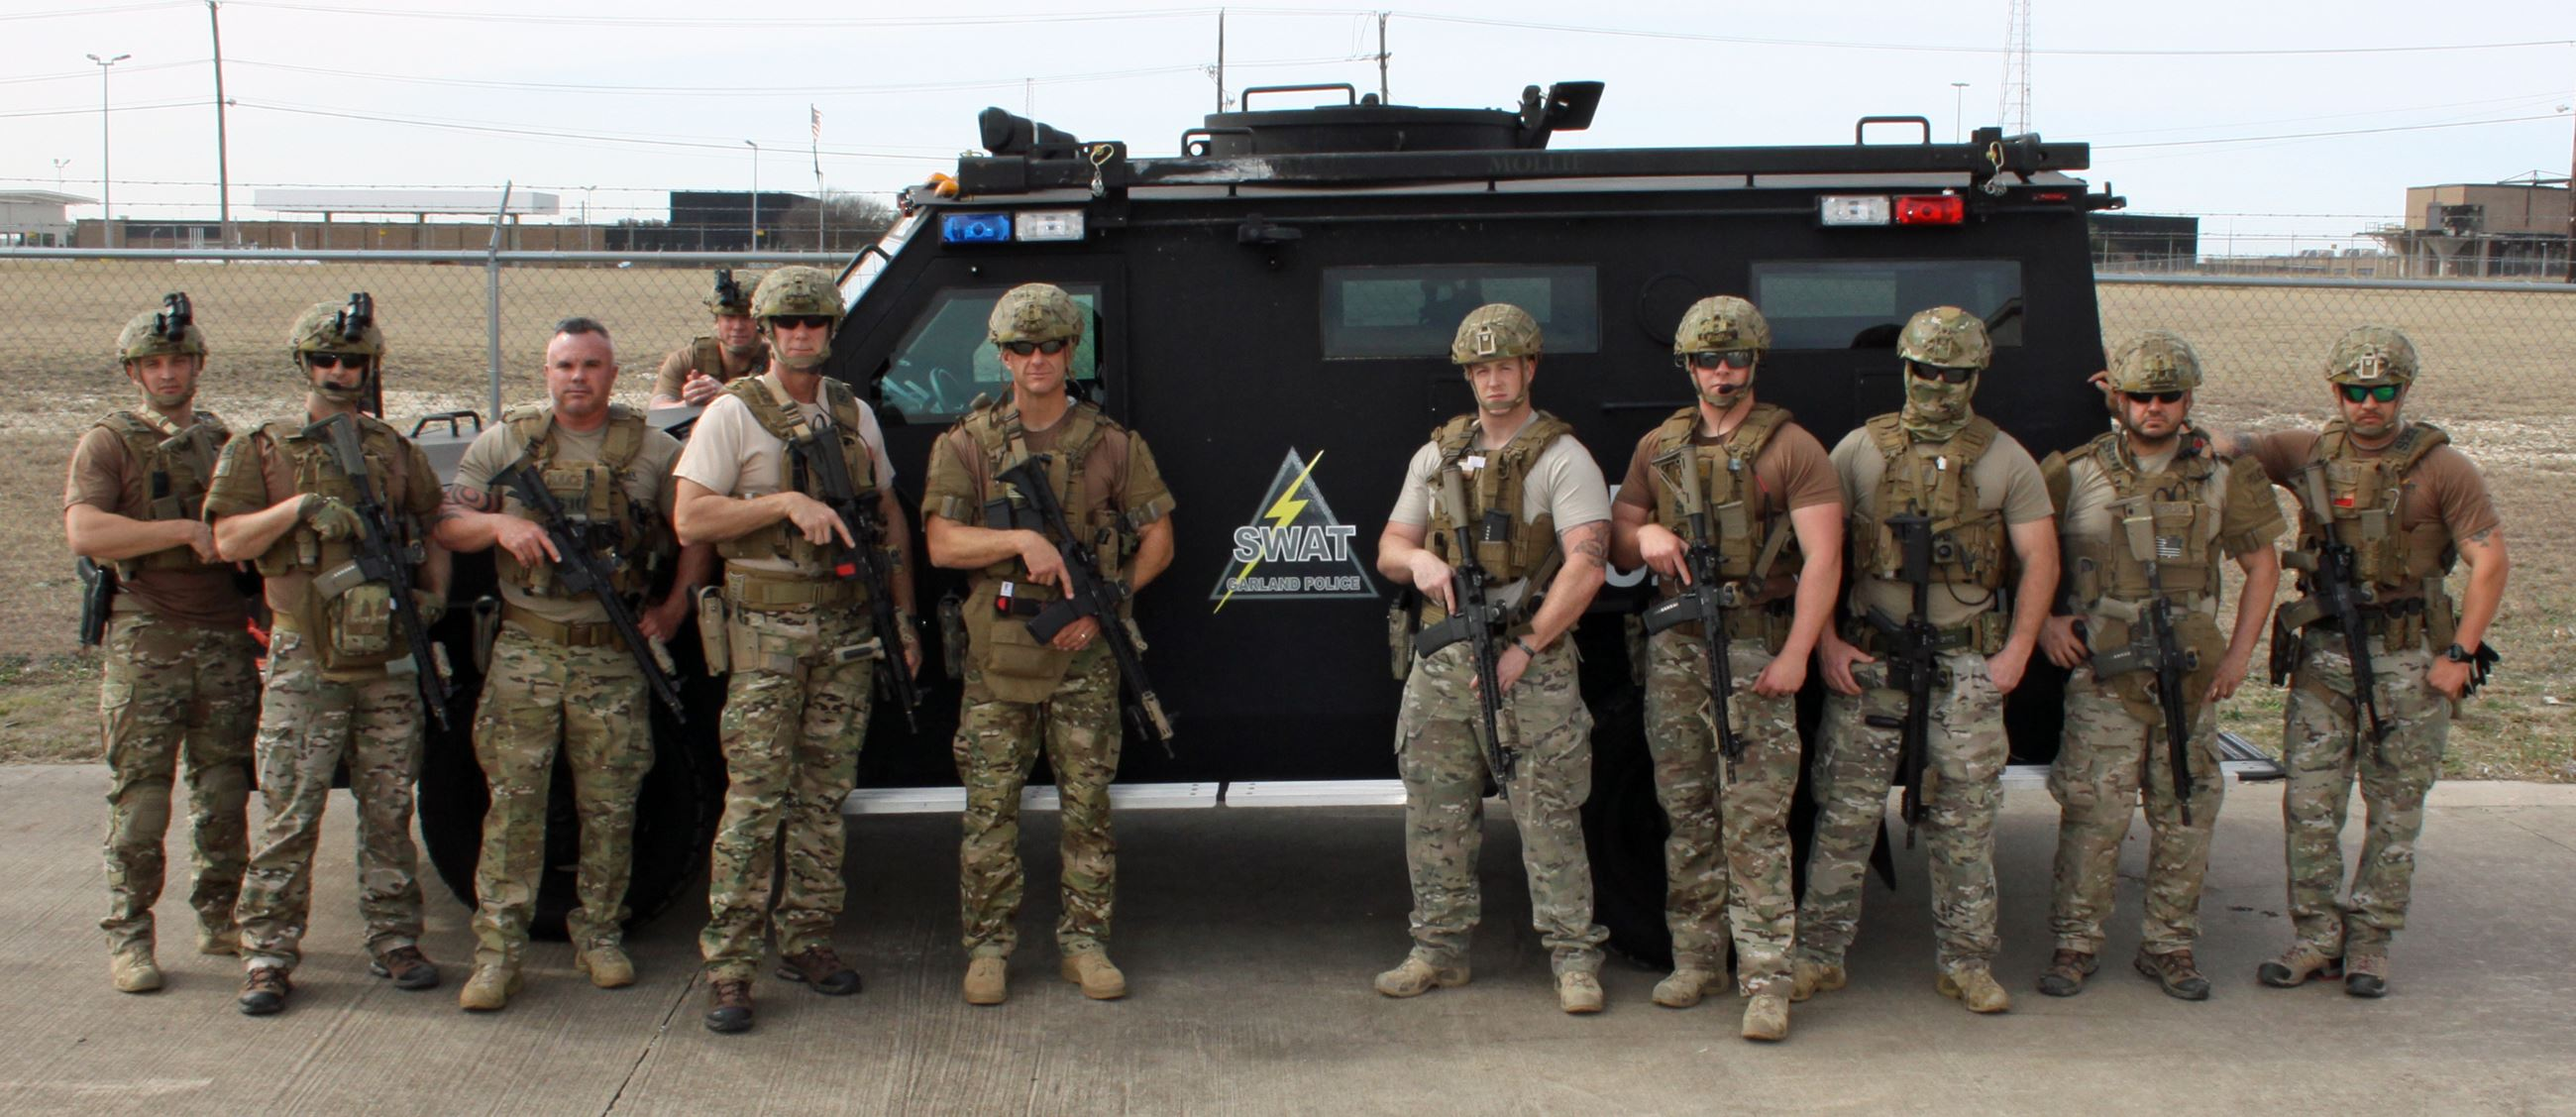 SWAT Team Group Picture in Front of a SWAT Vehicle